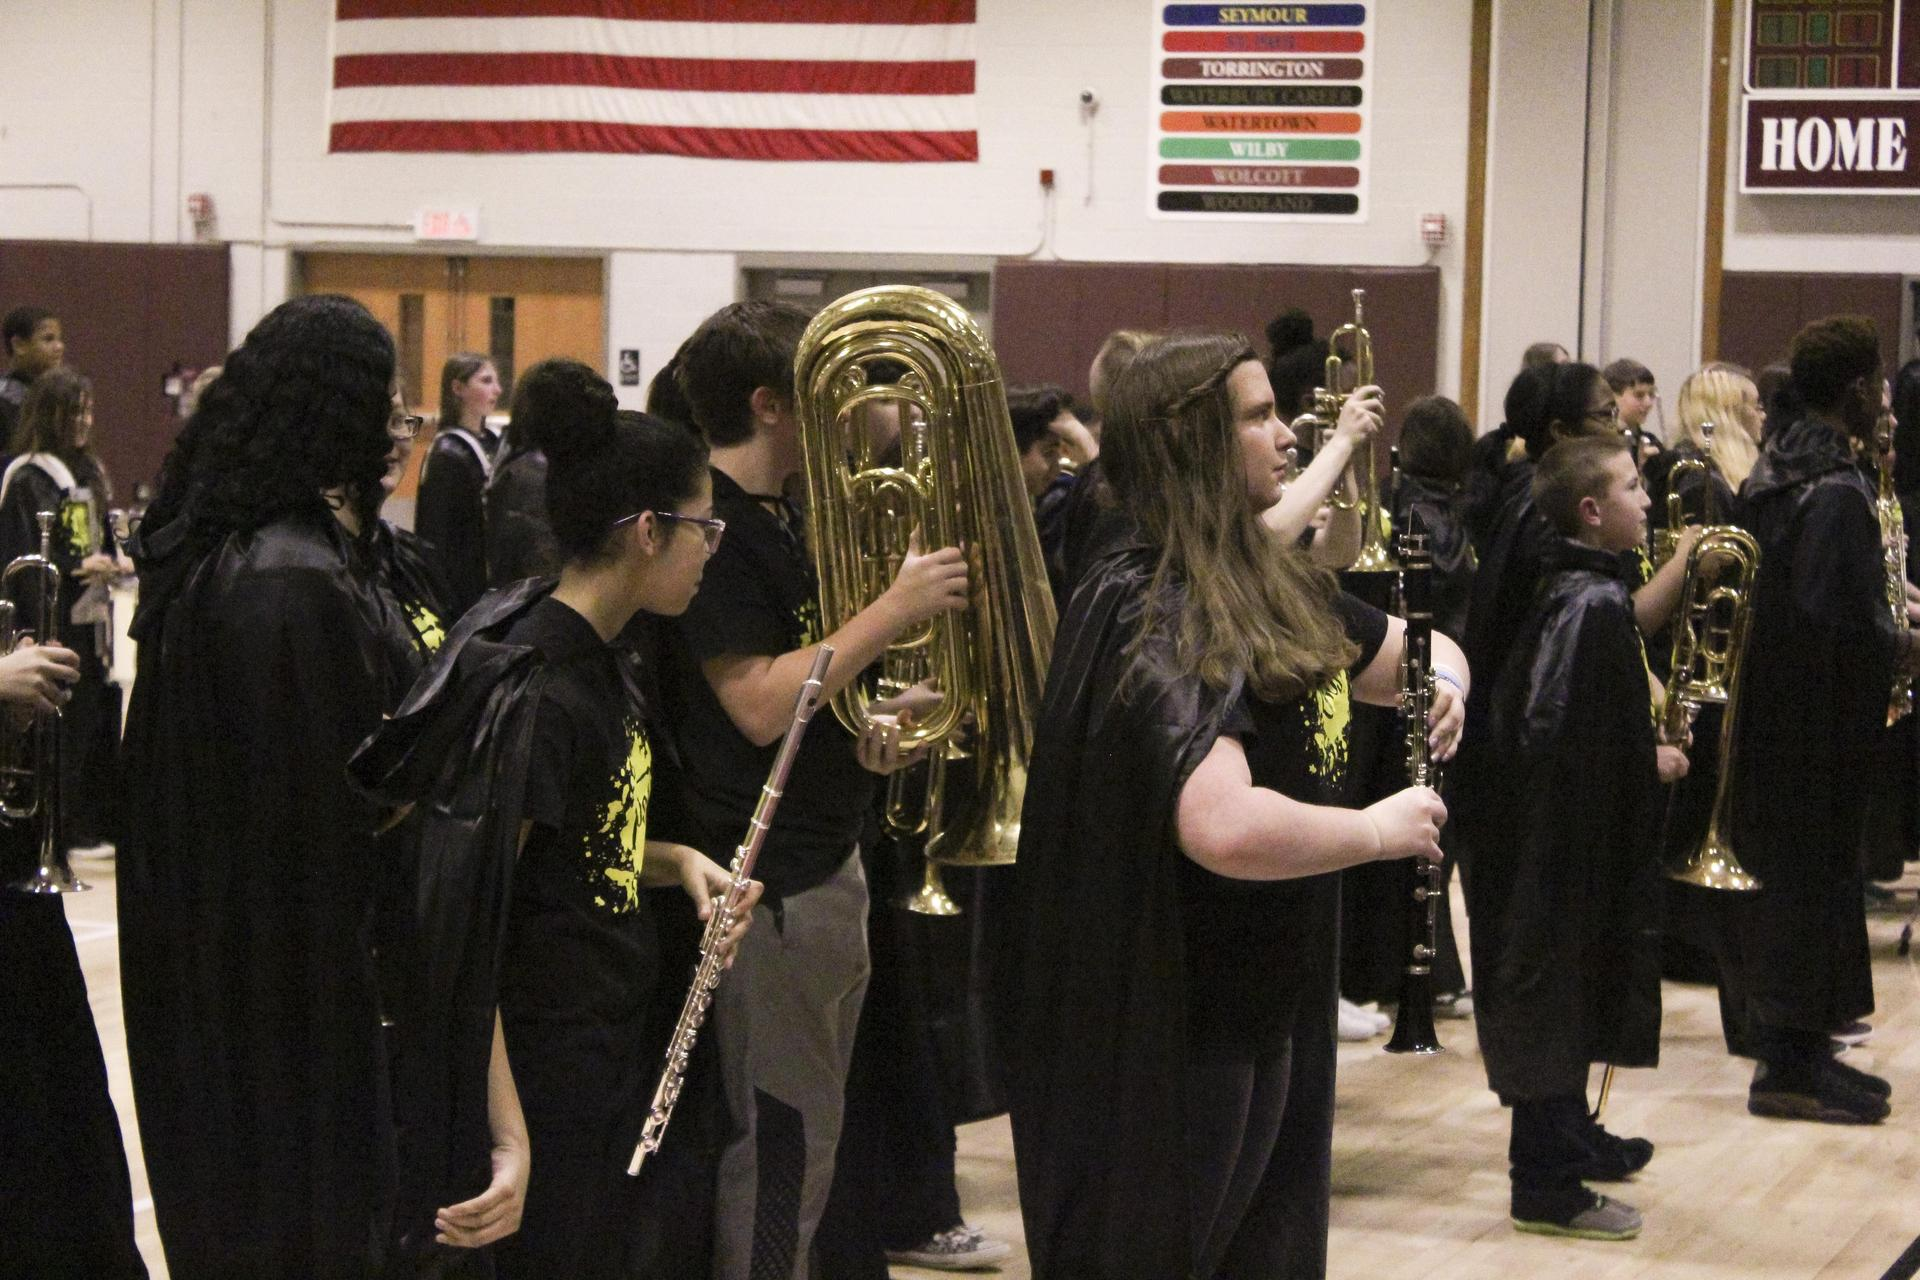 SoundSport musicians playing concert in high school gym